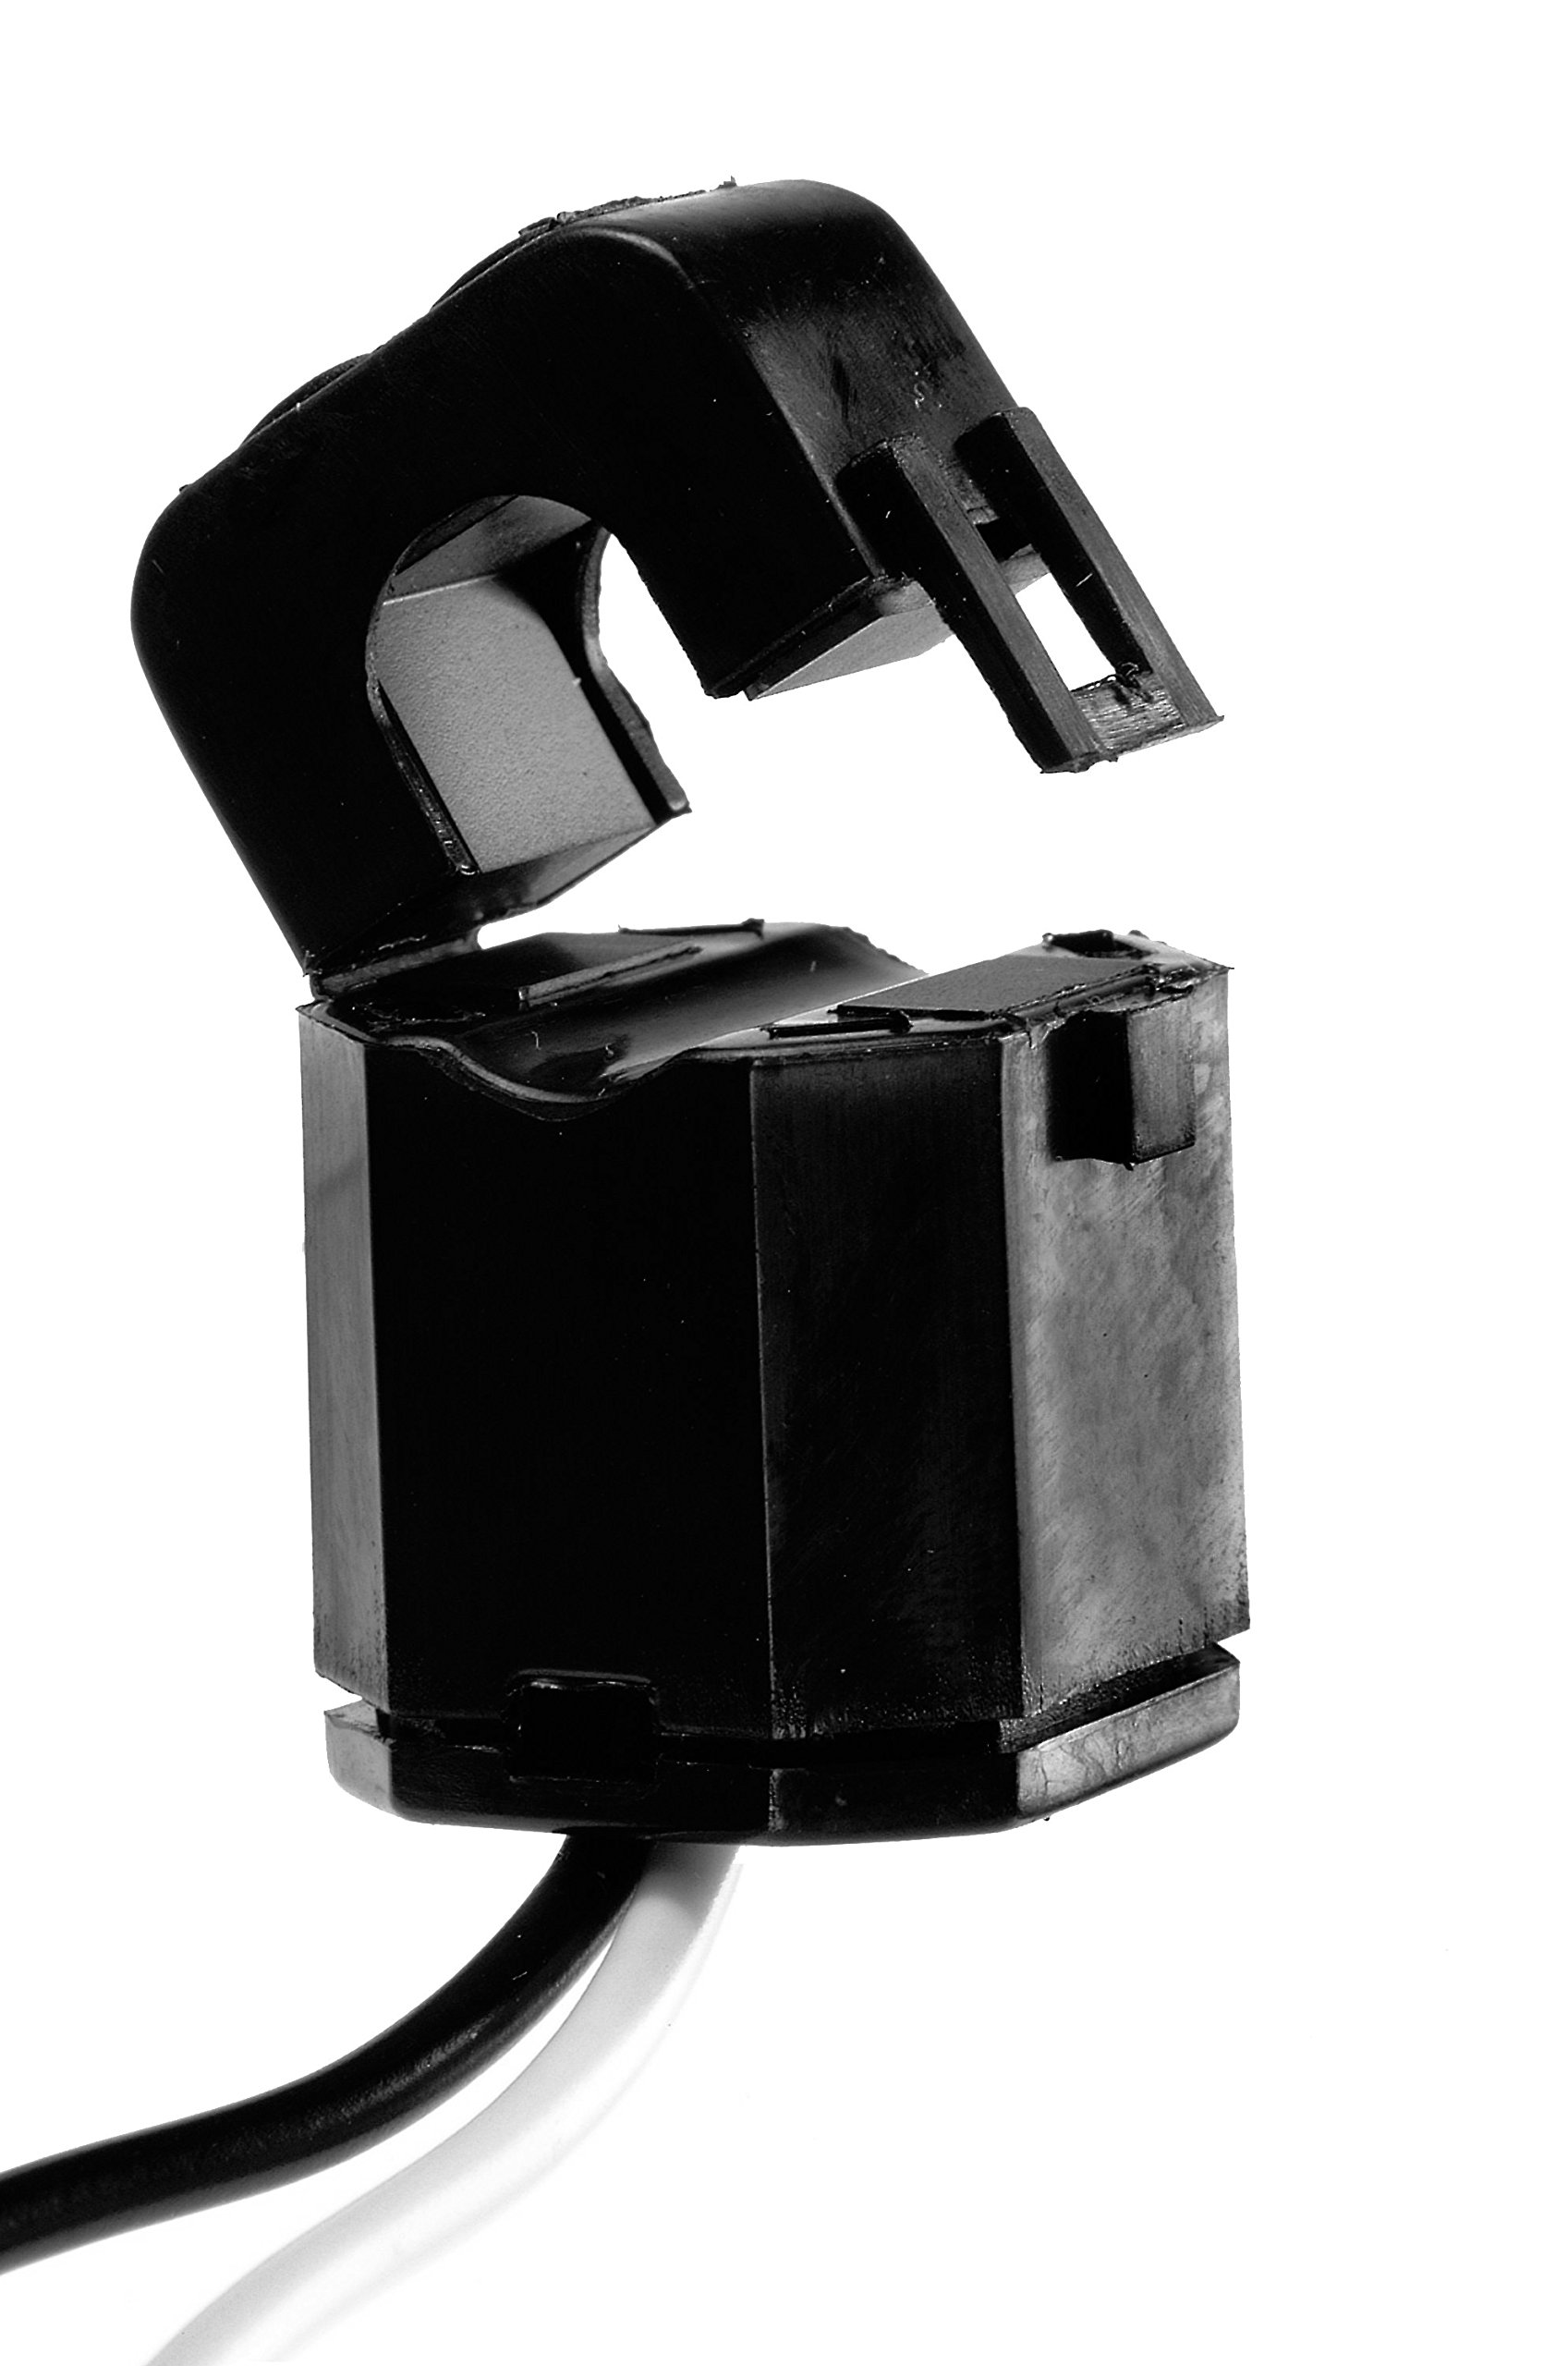 CR Magnetics CR3110-3000 Current Transformer, Low Cost, UL Recognized, 3000 Turn, Split Core, 75 AAC Rated